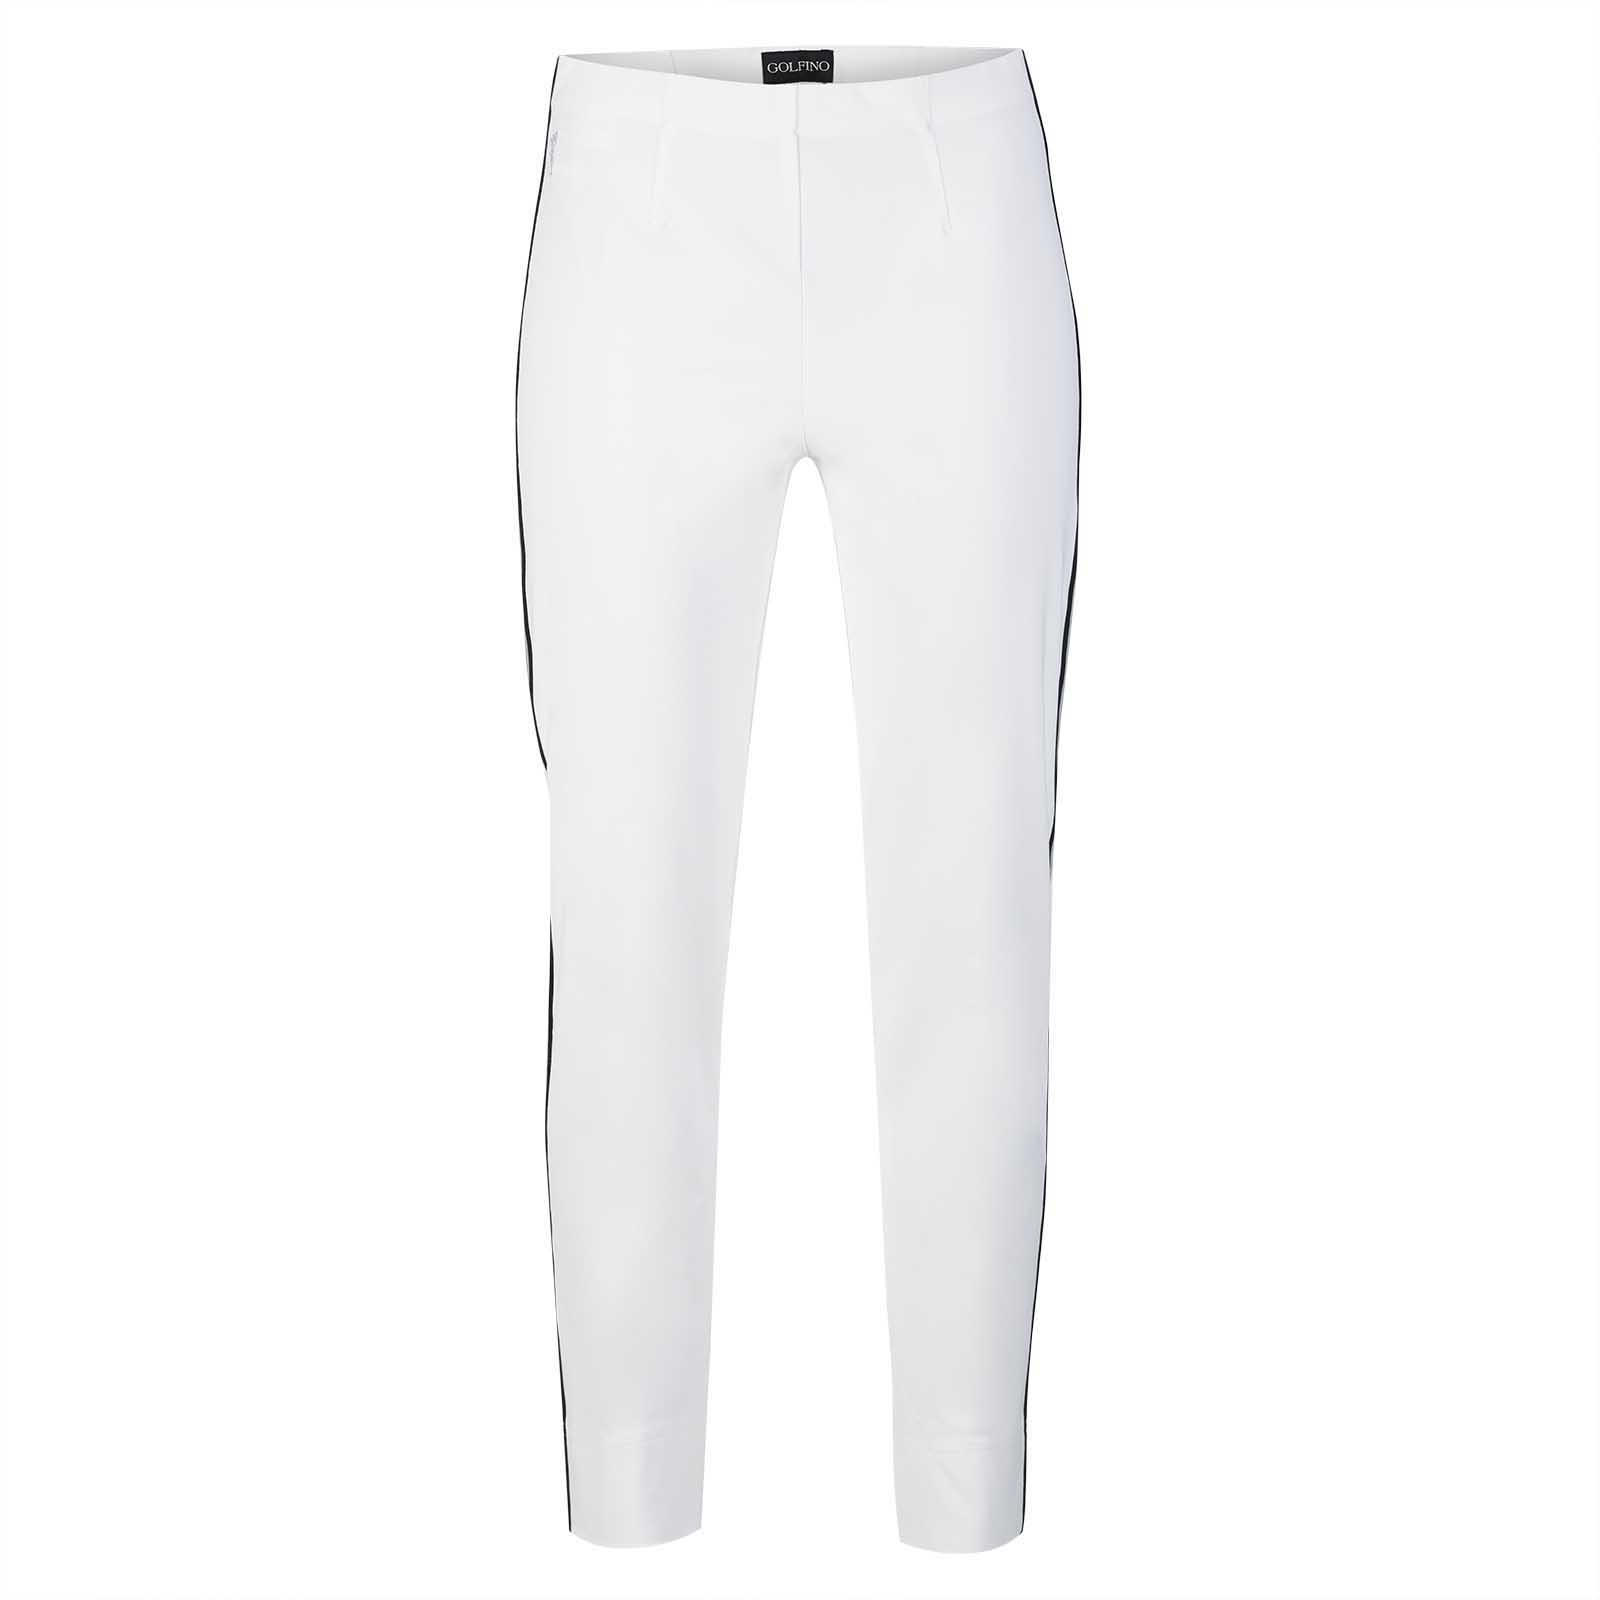 Damen Caprihose mit Extra Stretch Komfort und Galonstreifen in Slim Fit